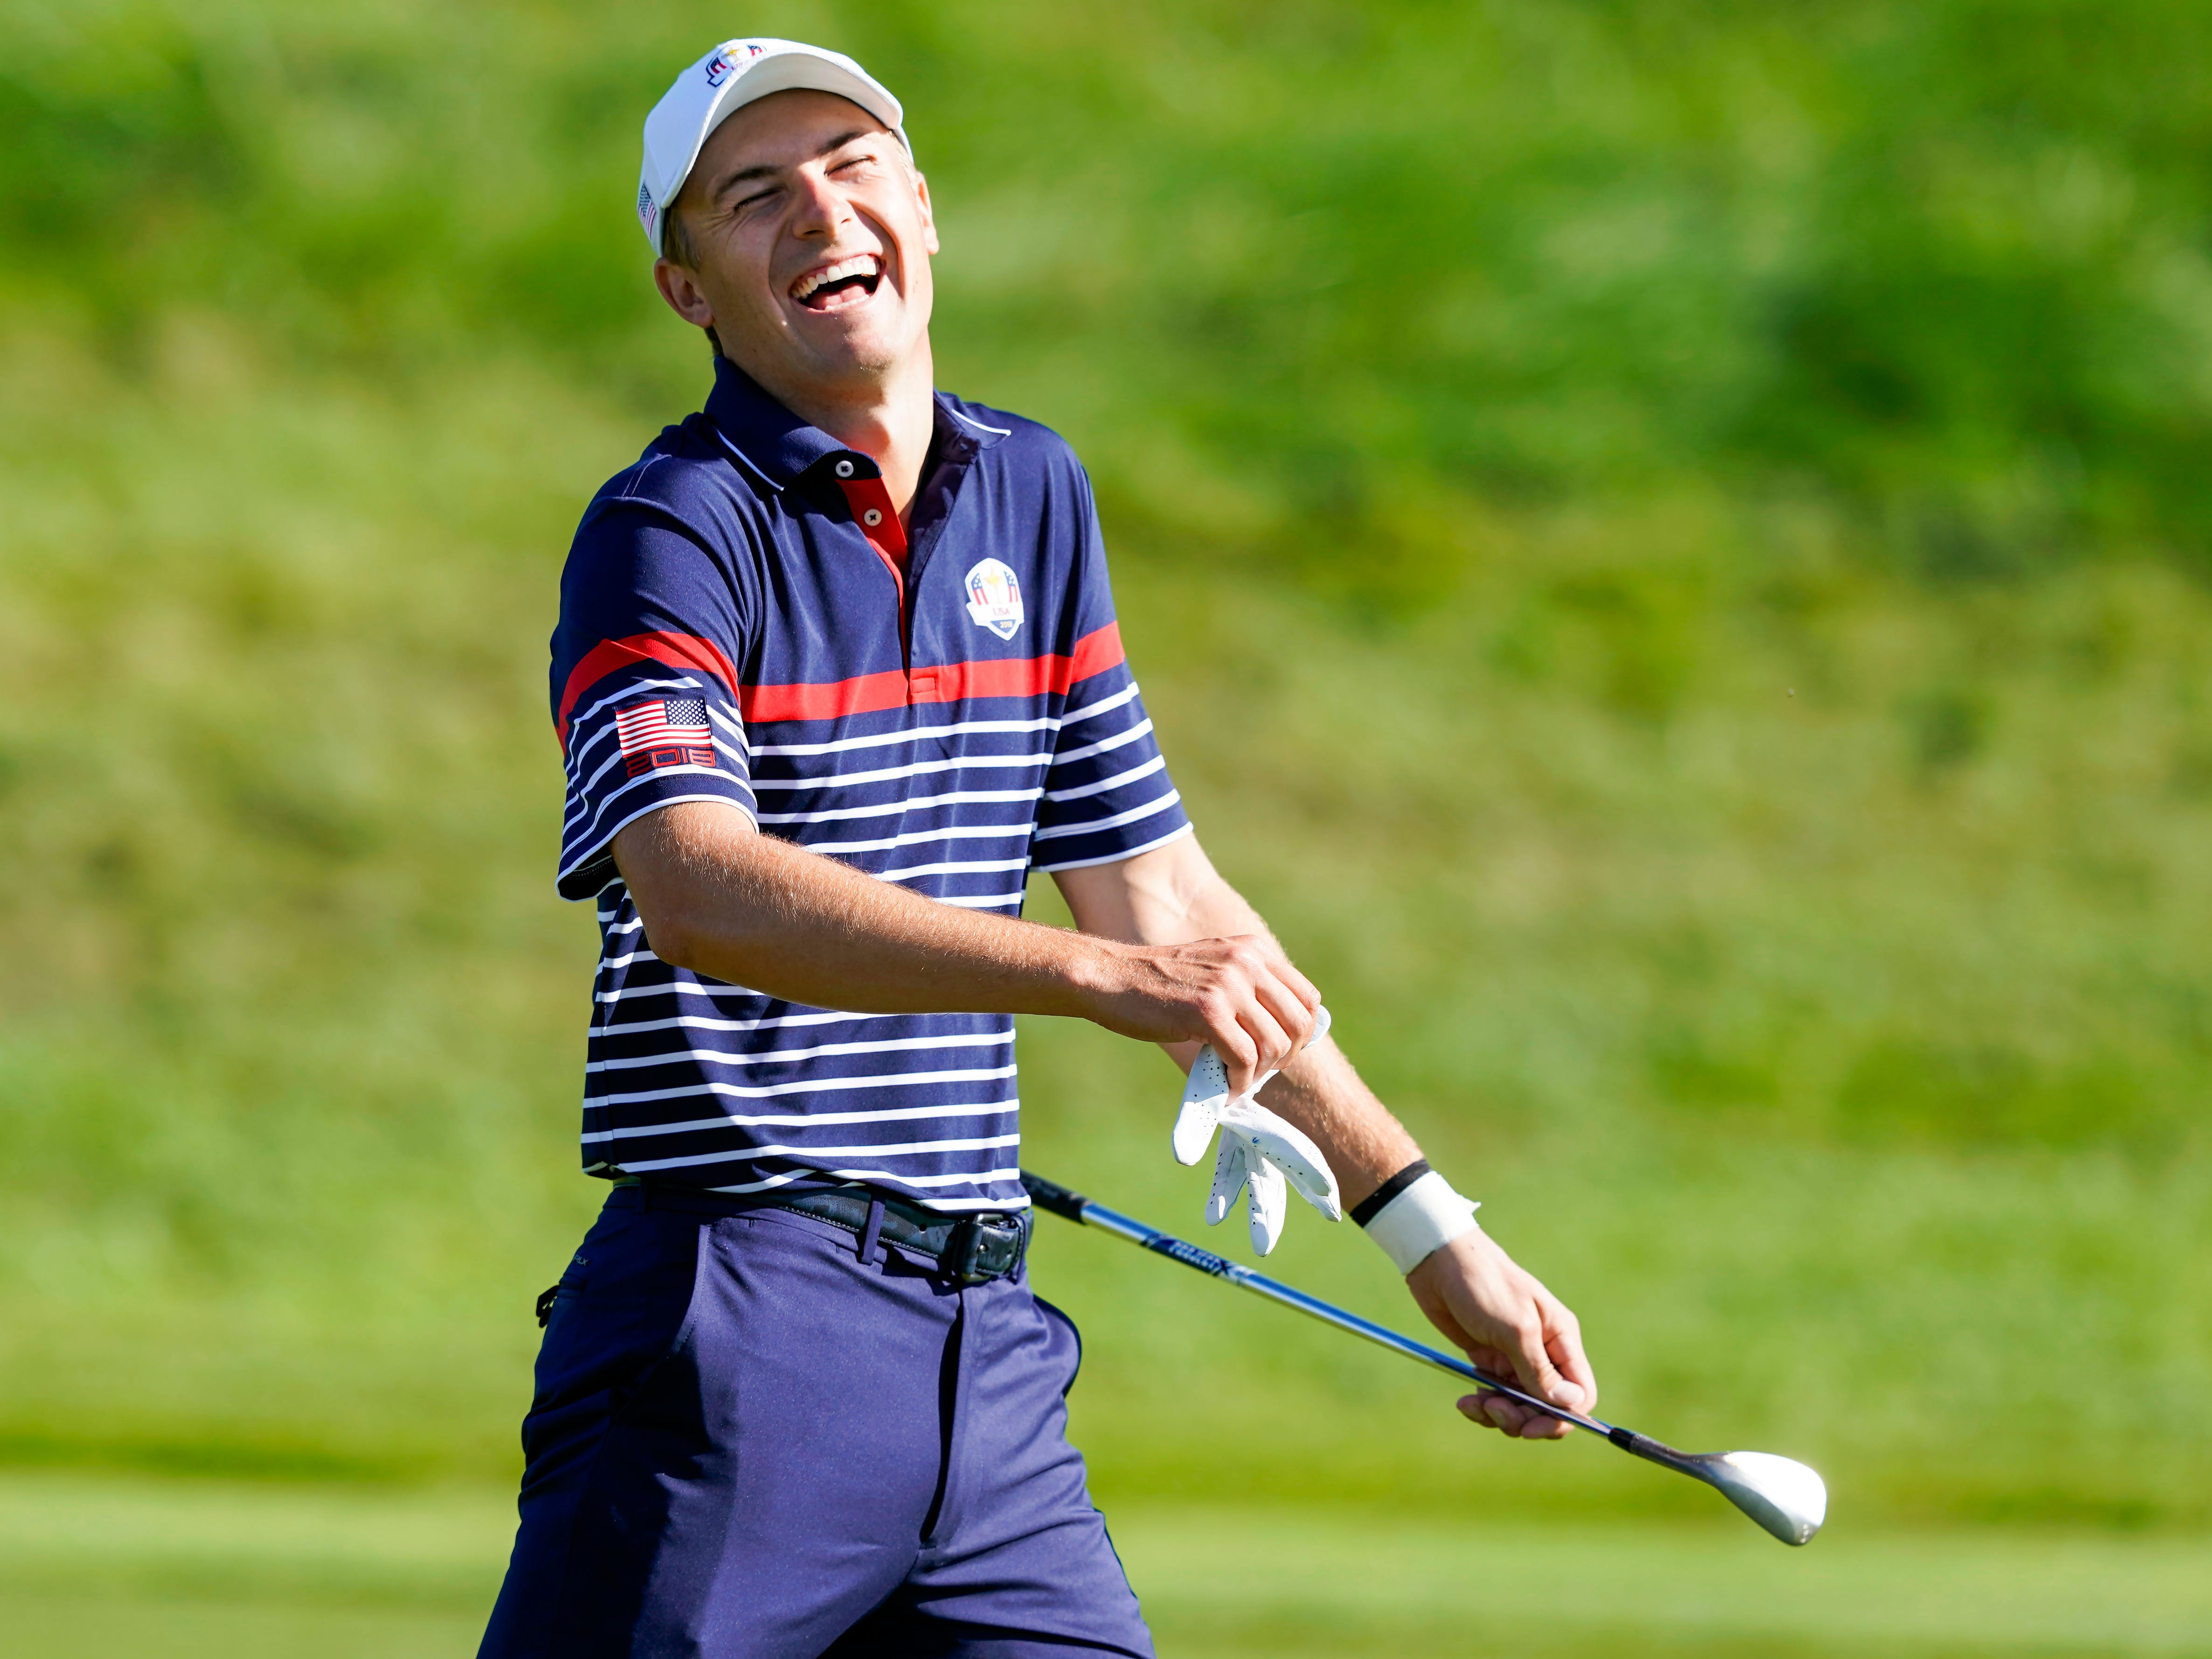 Jordan Spieth laughs during a Ryder Cup practice round at Le Golf National.